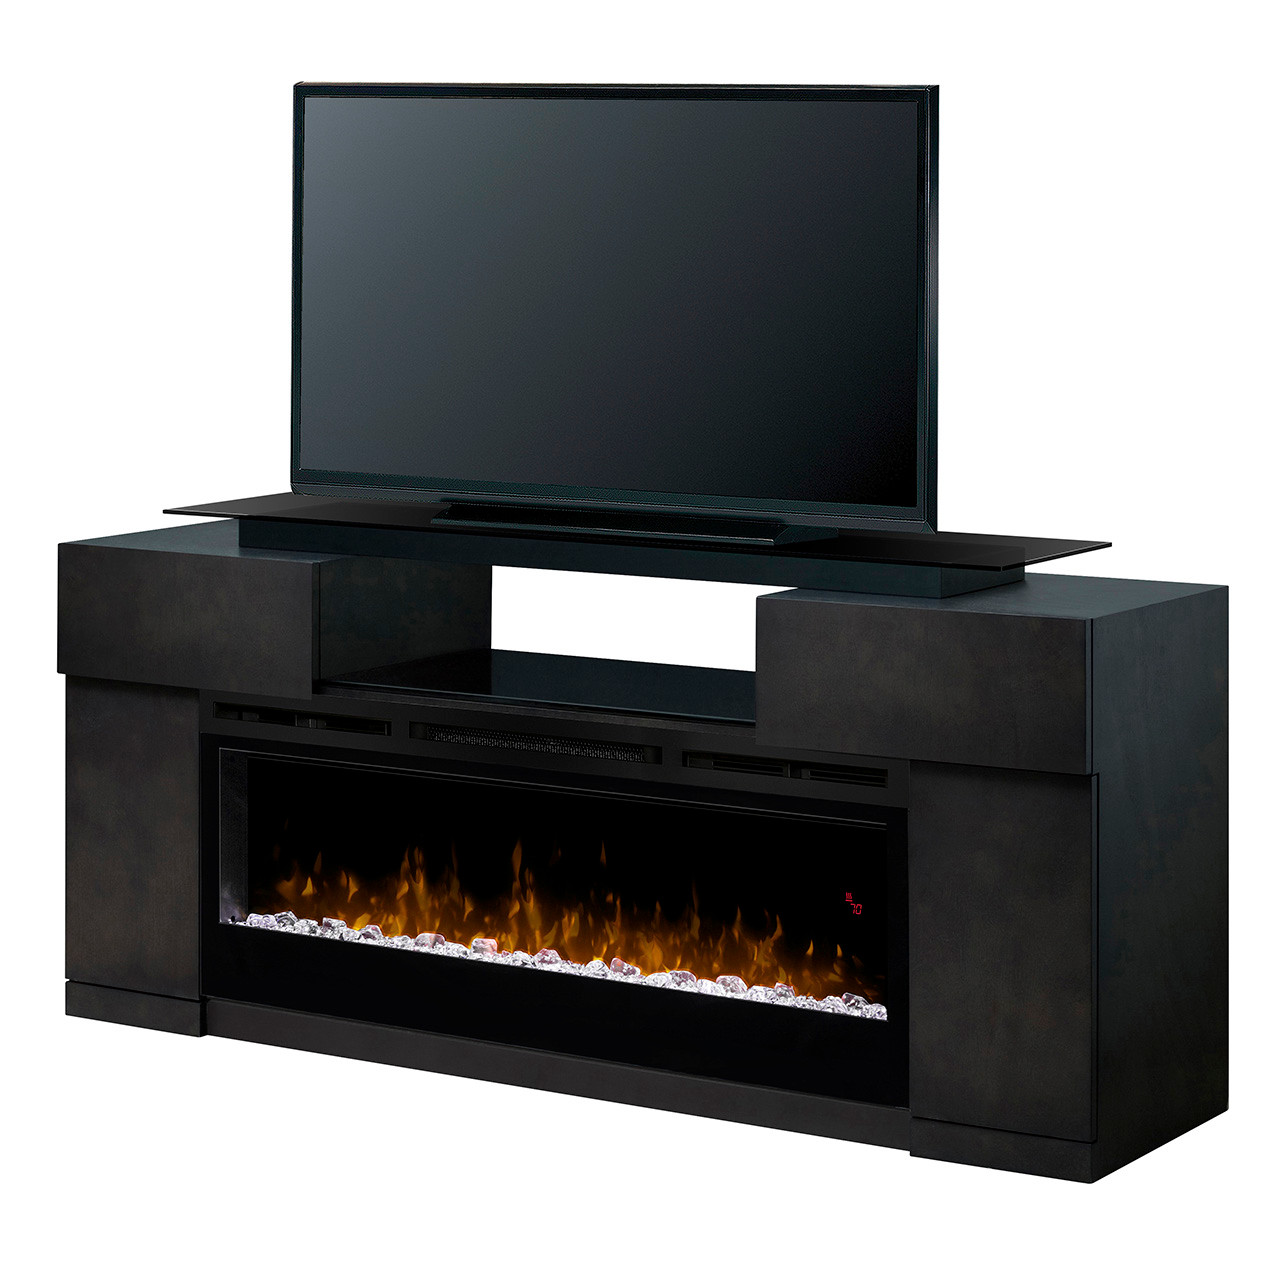 Dimplex Concorde Electric Fireplace W/ Media Console